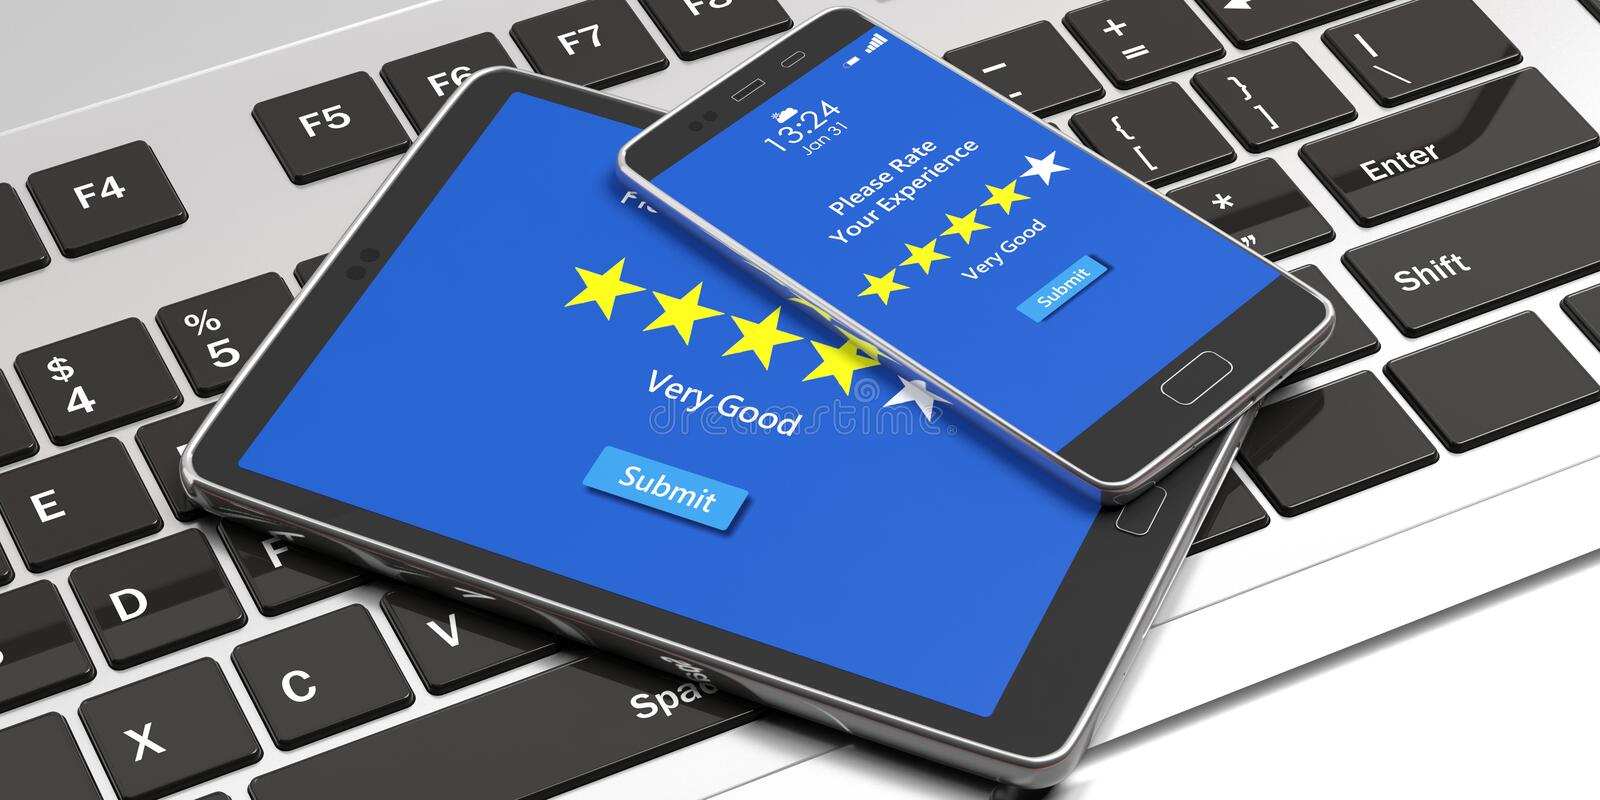 Very good rating on devices screens, computer keyboard background. 3d illustration. Customers feedback, rating, review. 4 stars, very good text on devices royalty free illustration